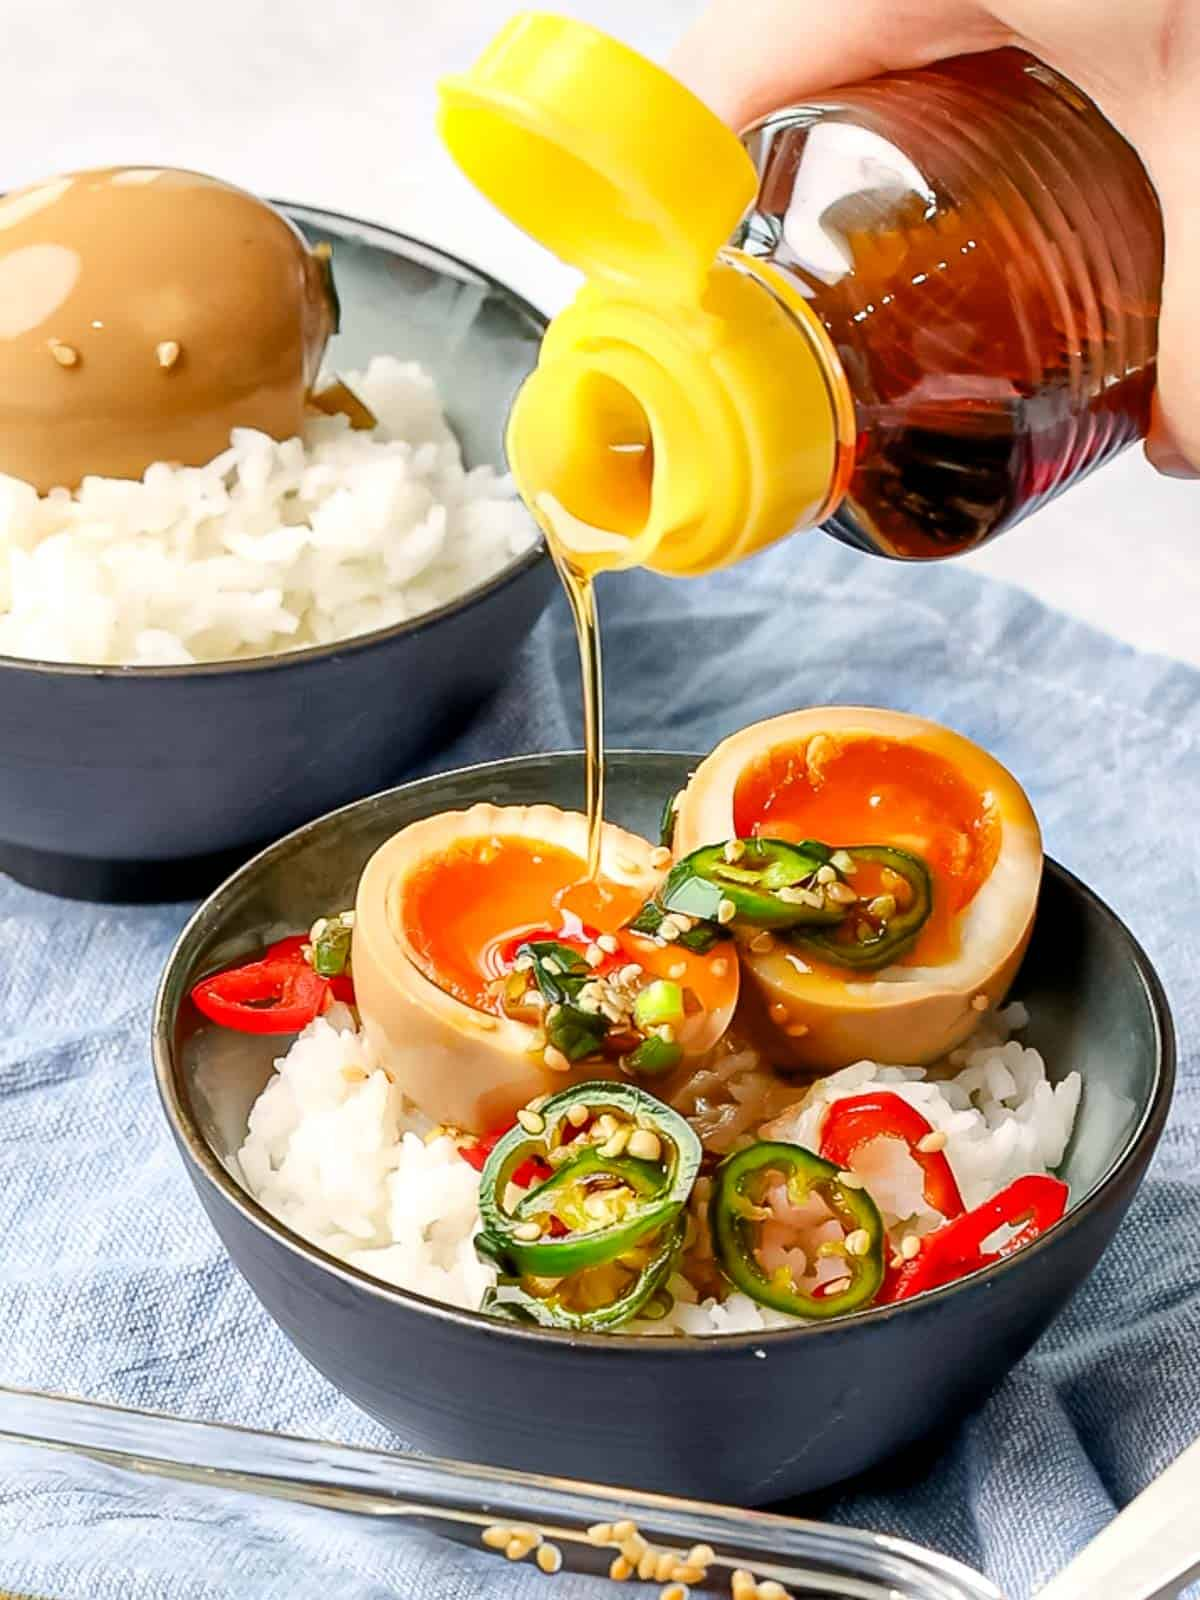 Sesame oil drizzled on top of a mayak egg cut in half placed on top of rice and garnished with peppers.